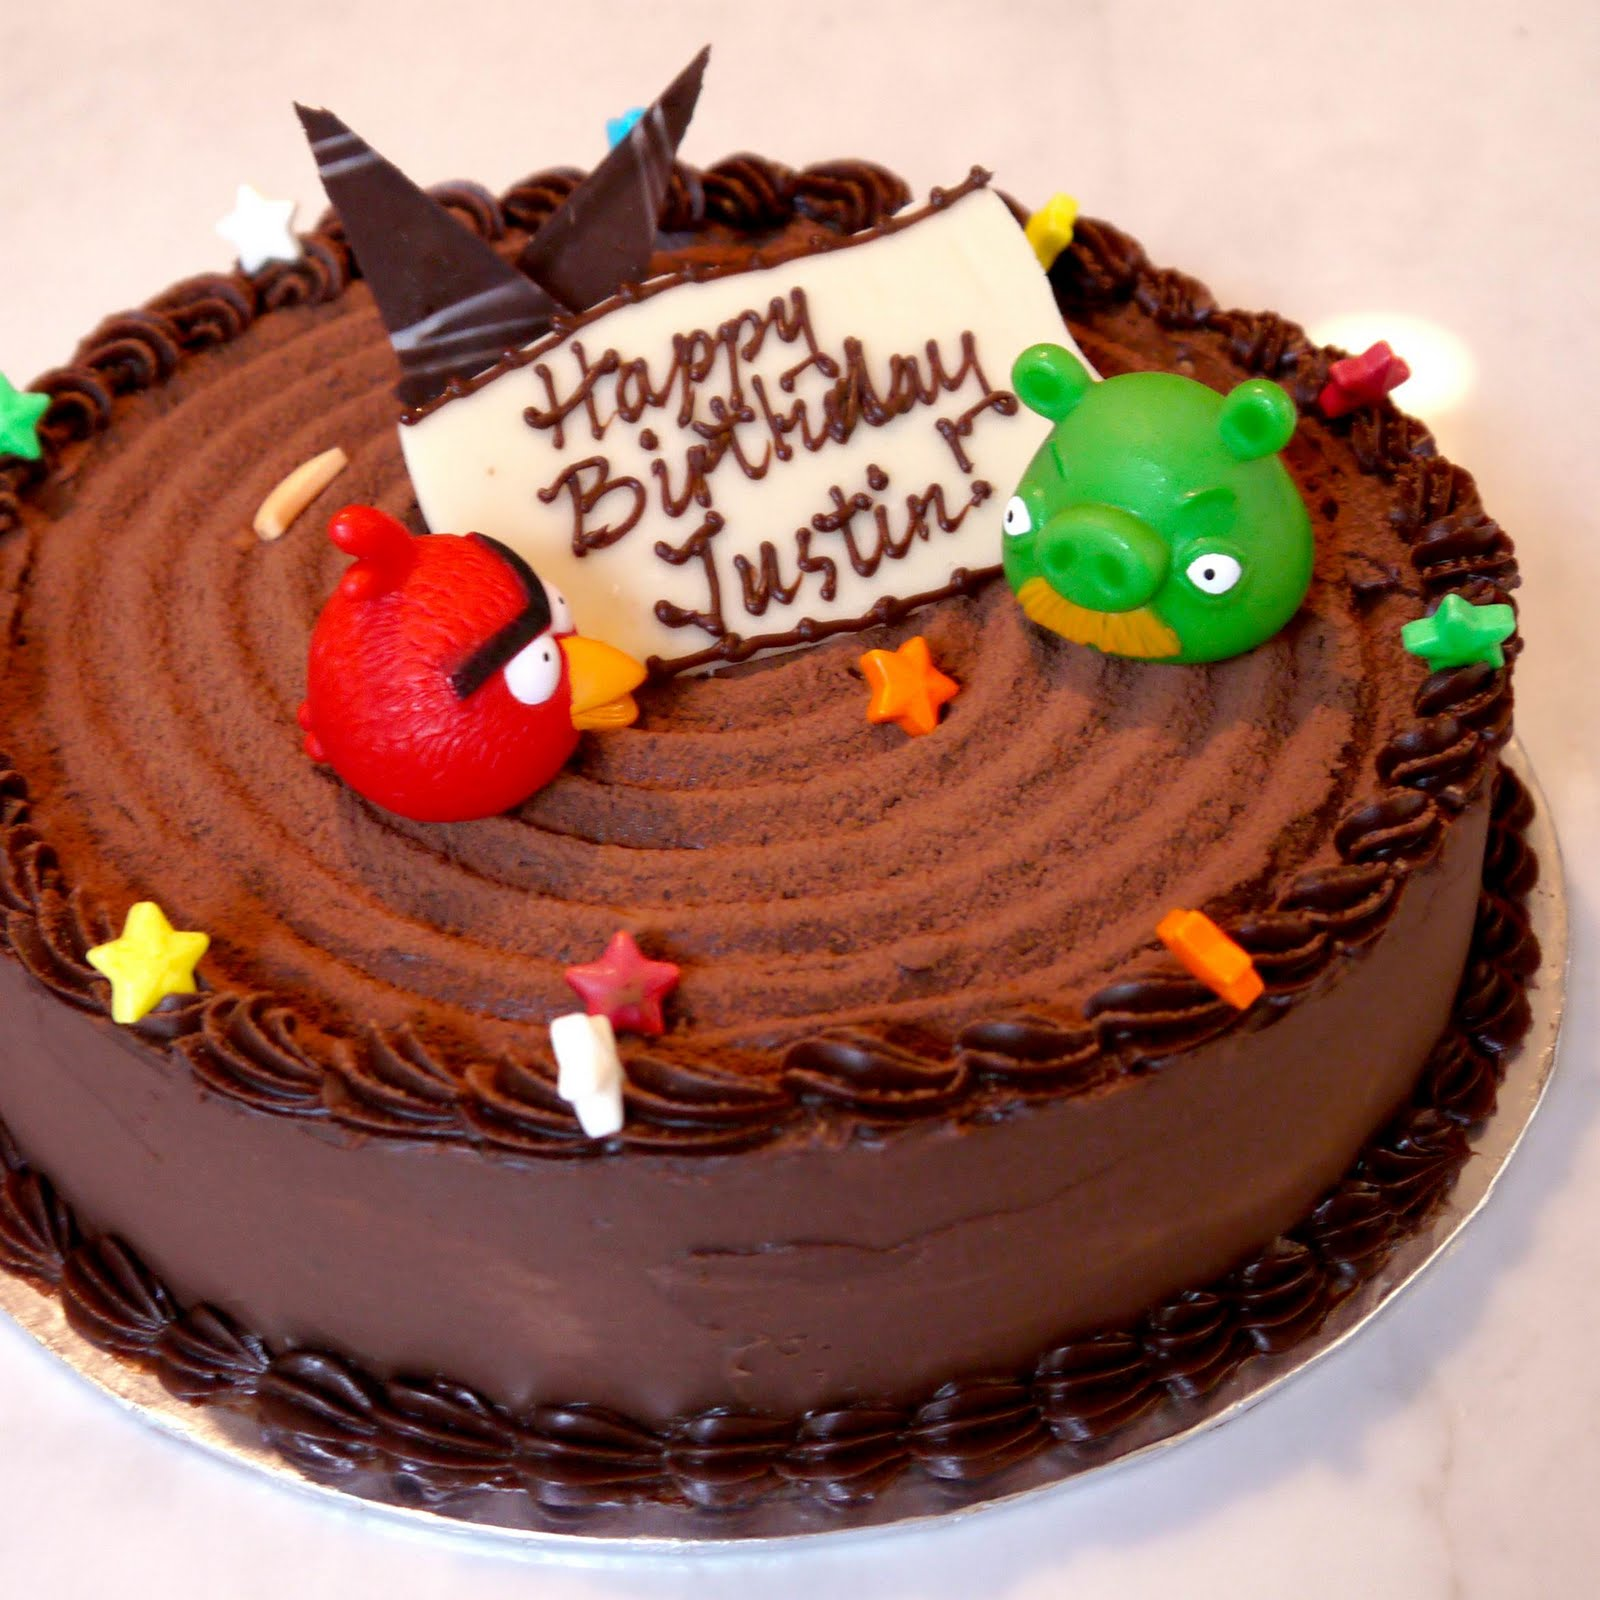 HEB Cakes Designs http://sweetindulgenceswk.blogspot.com/2011/11/angry-birds-birthday-cake.html